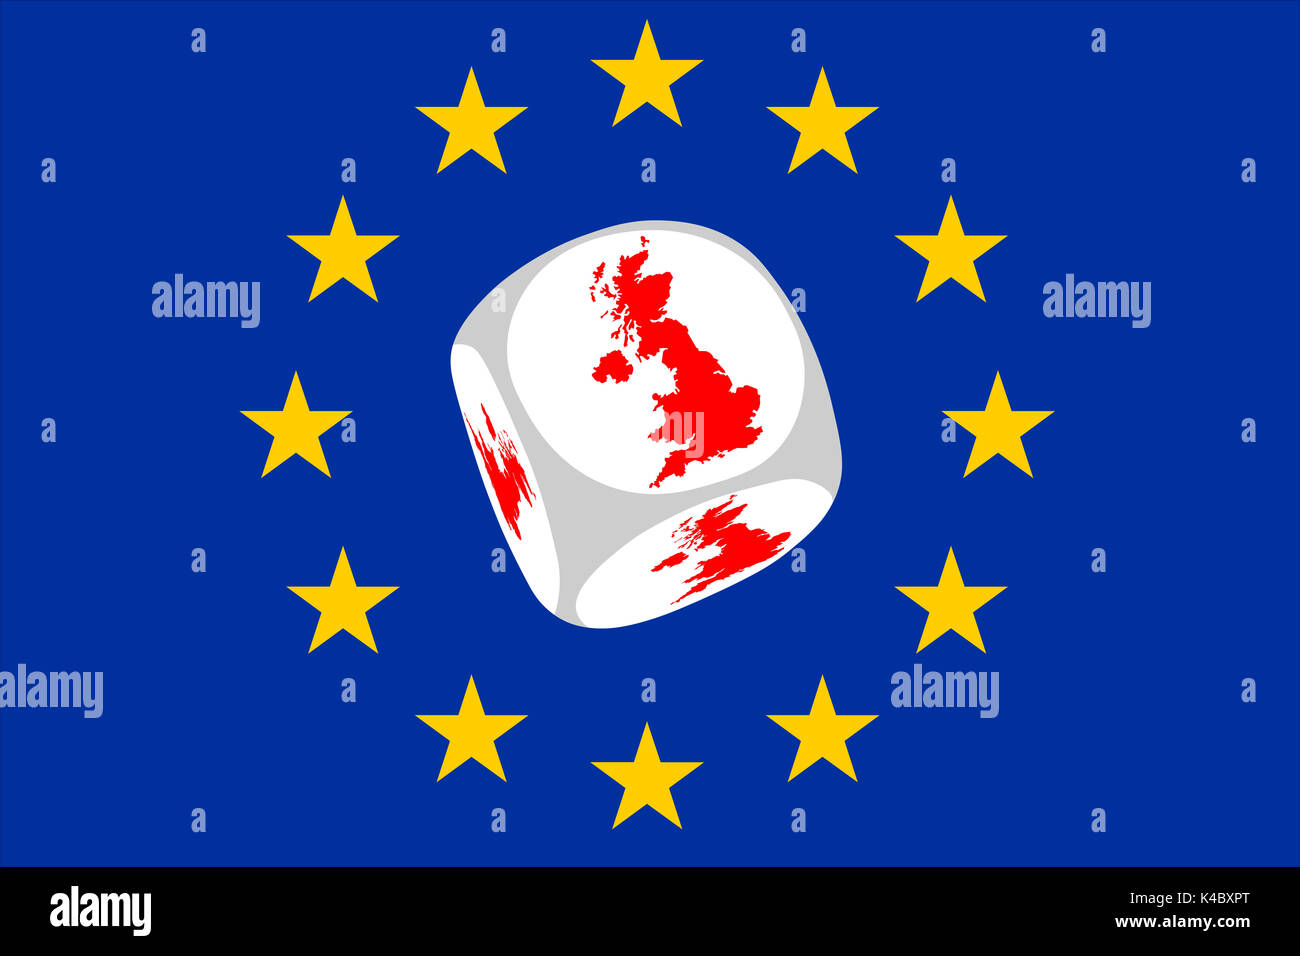 Brexit Flag Of The European Unium With Brexit Cube Stock Photo